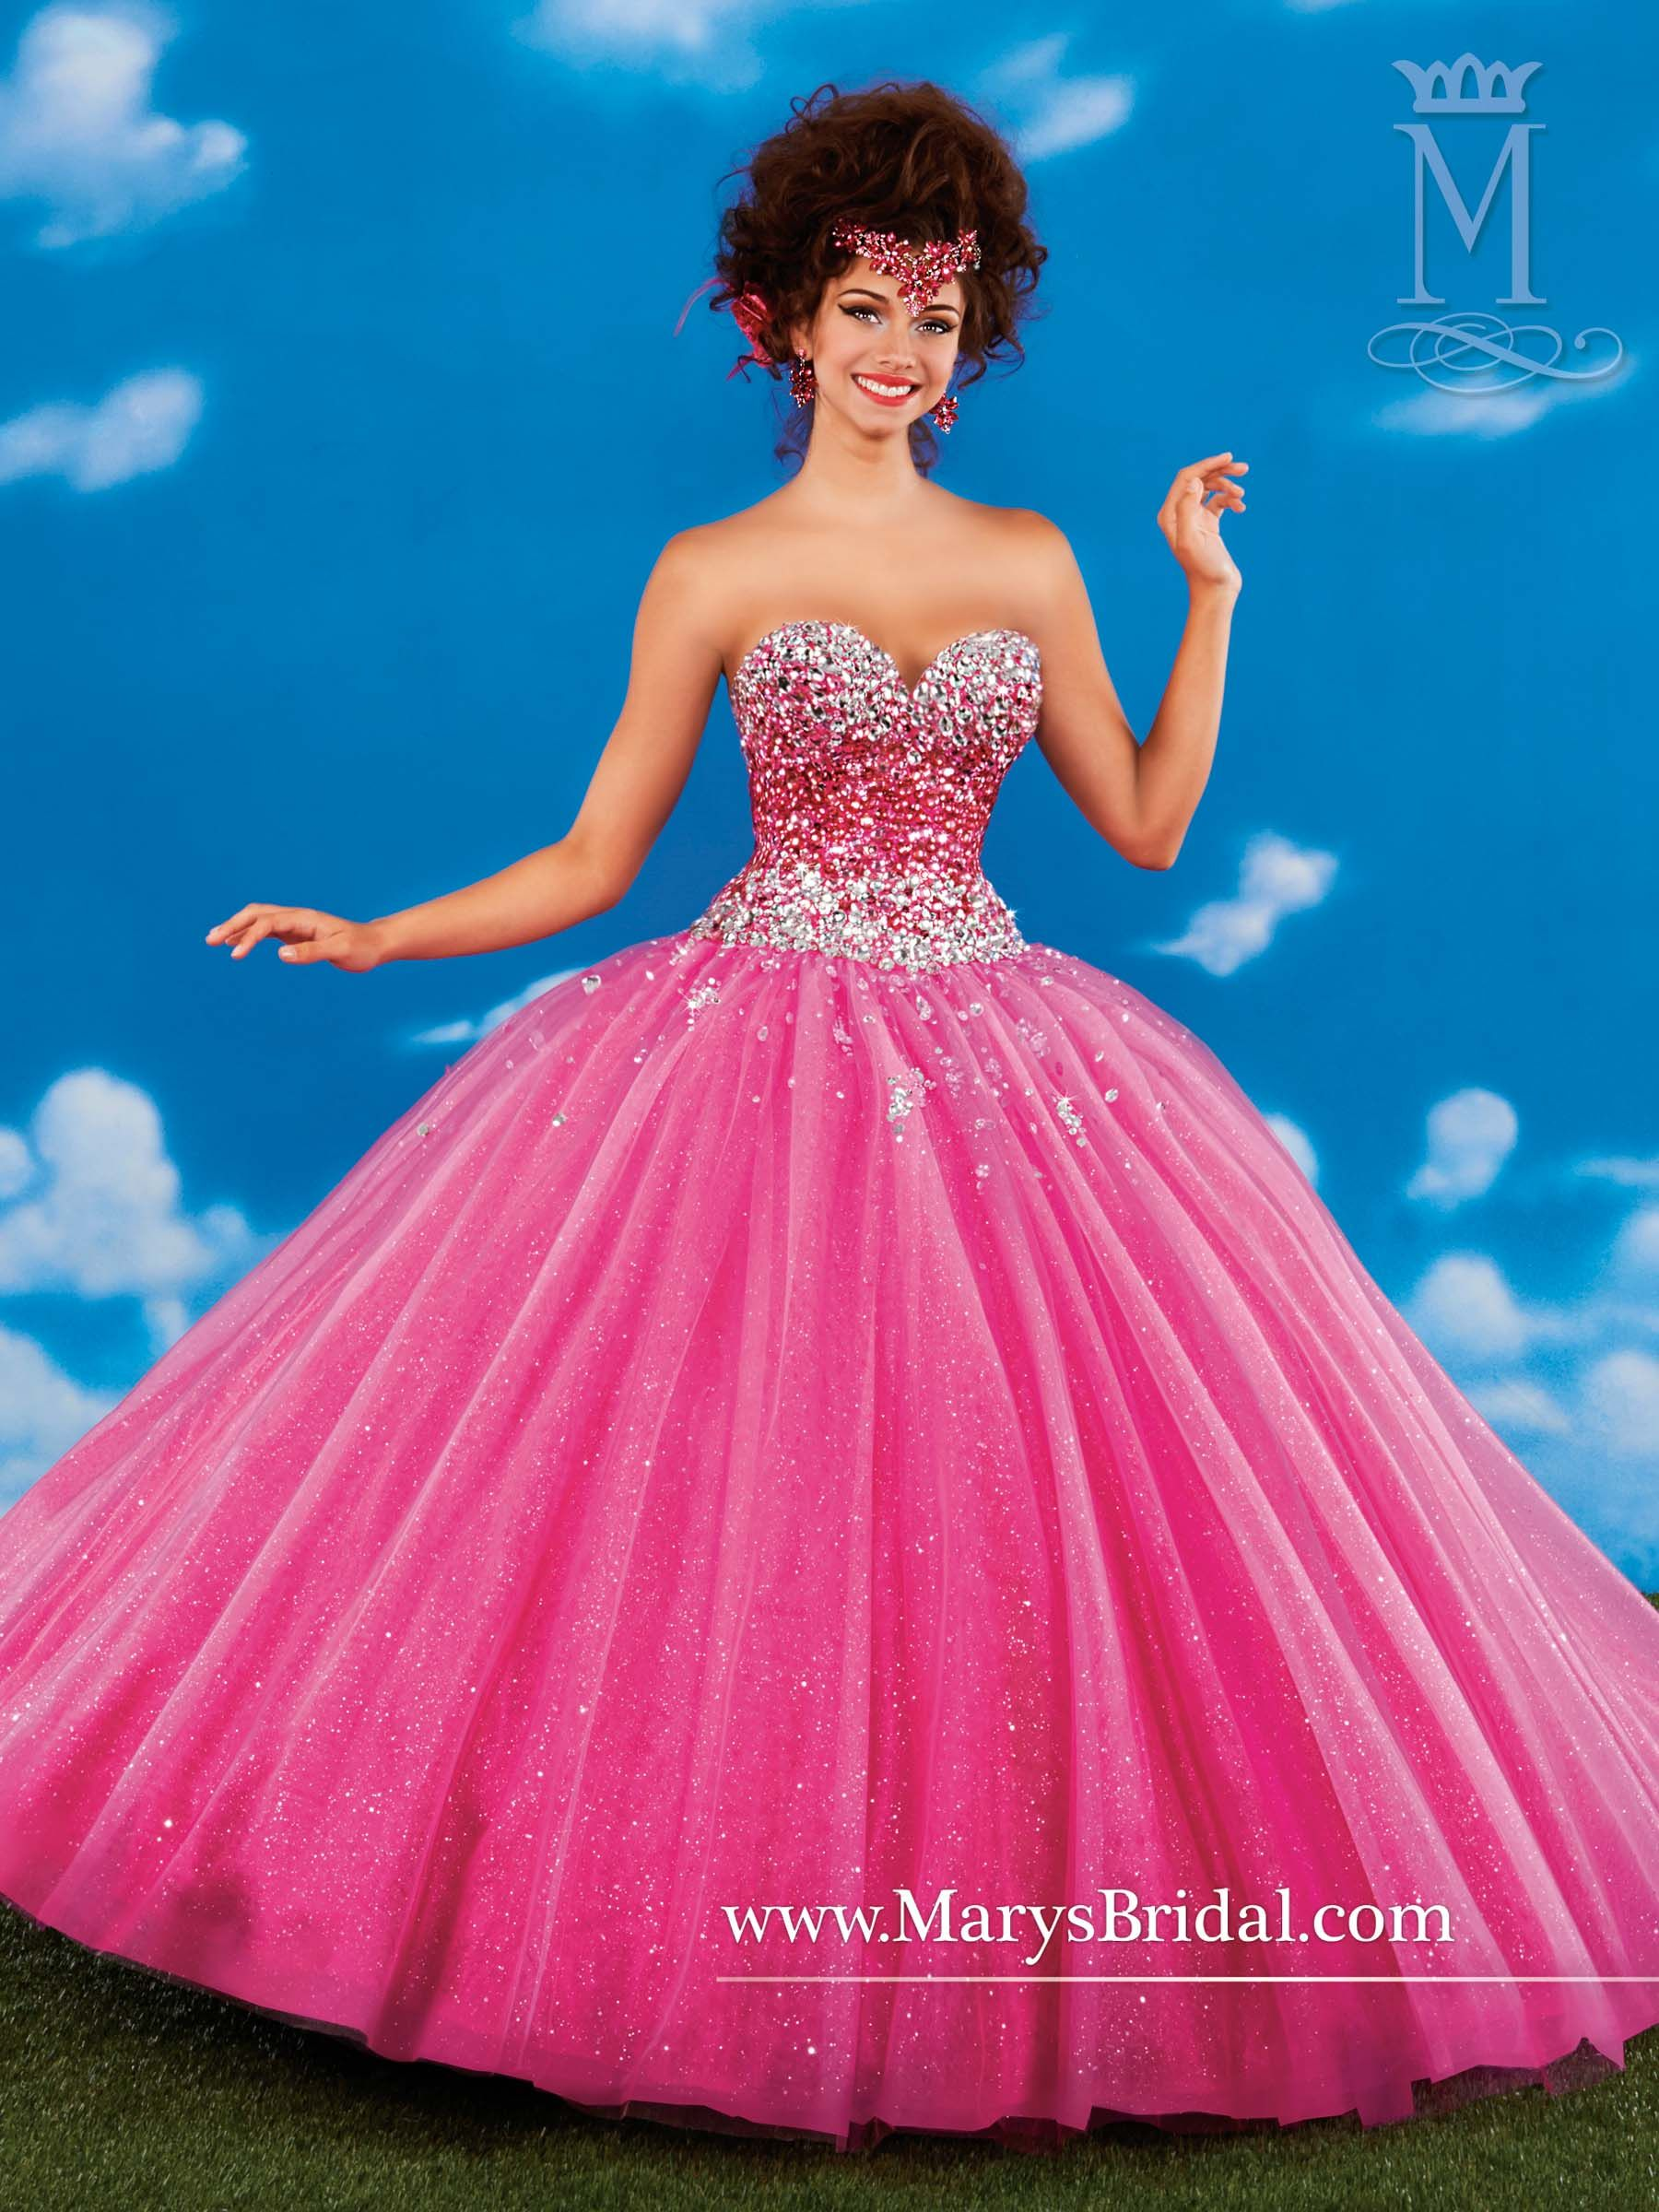 Mary\'s Princess collection of Quinceanera dresses | Maya\'s ...